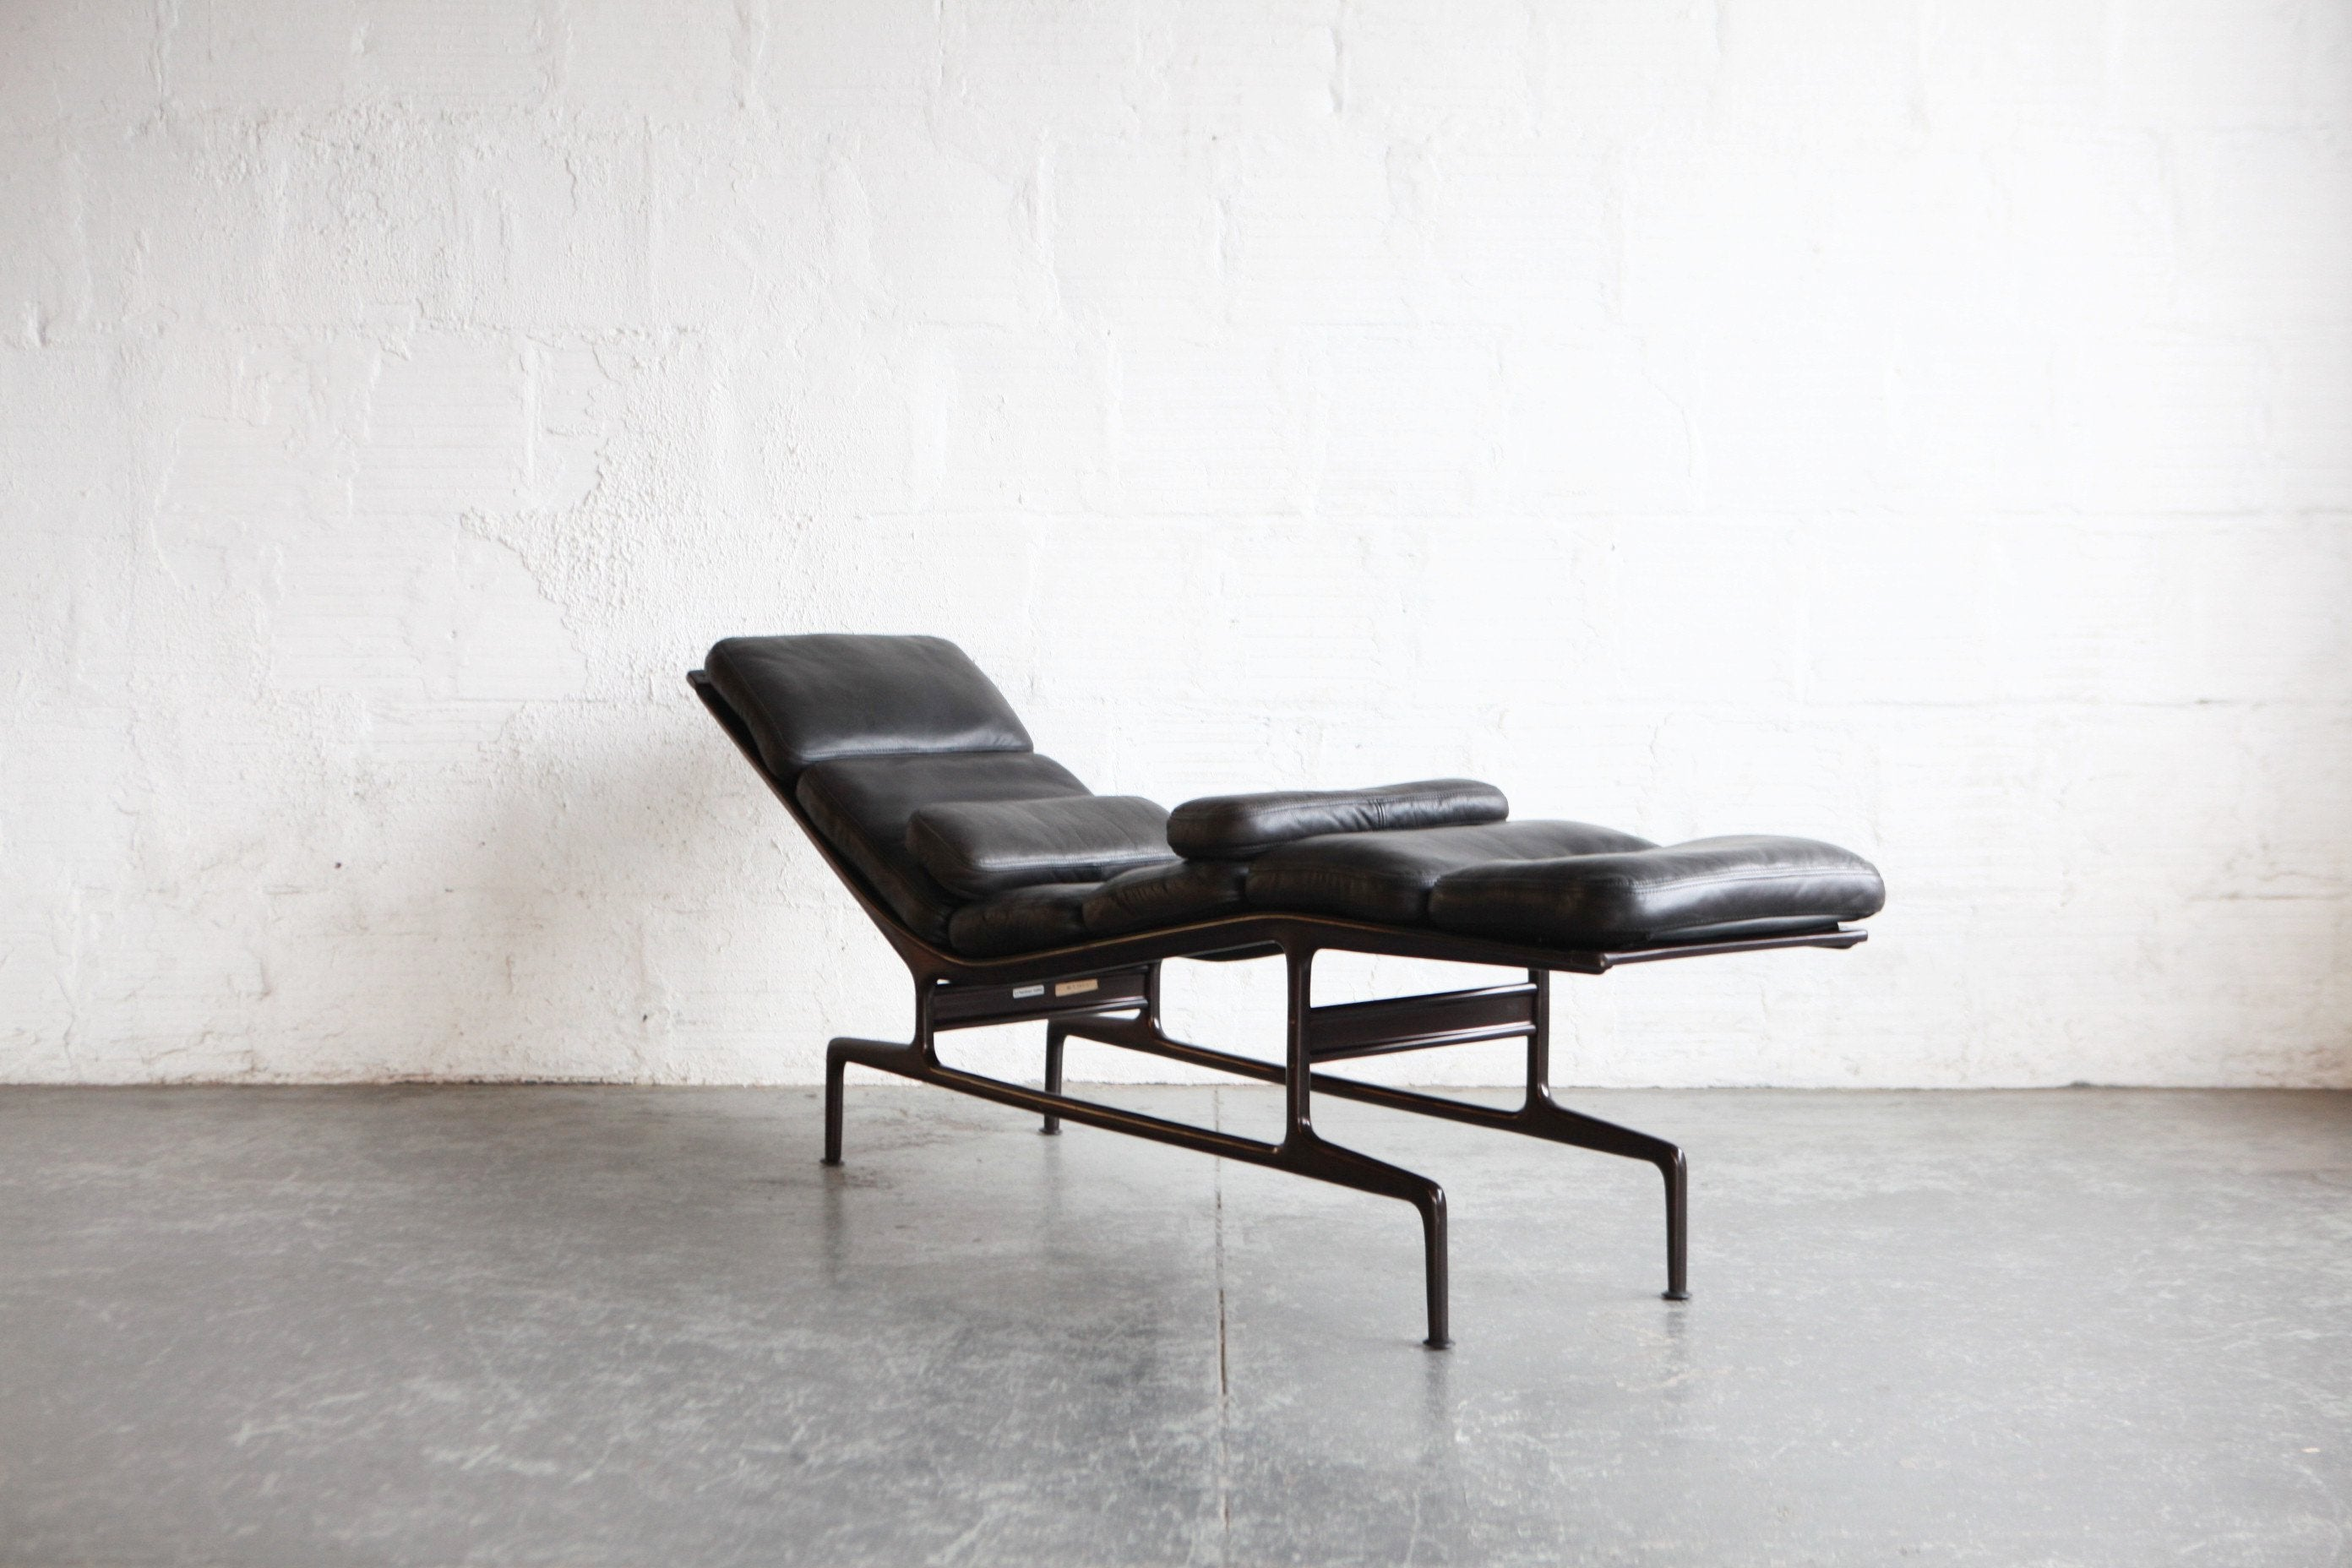 Eames Billy Wilder Chaise Lounge The Good Mod